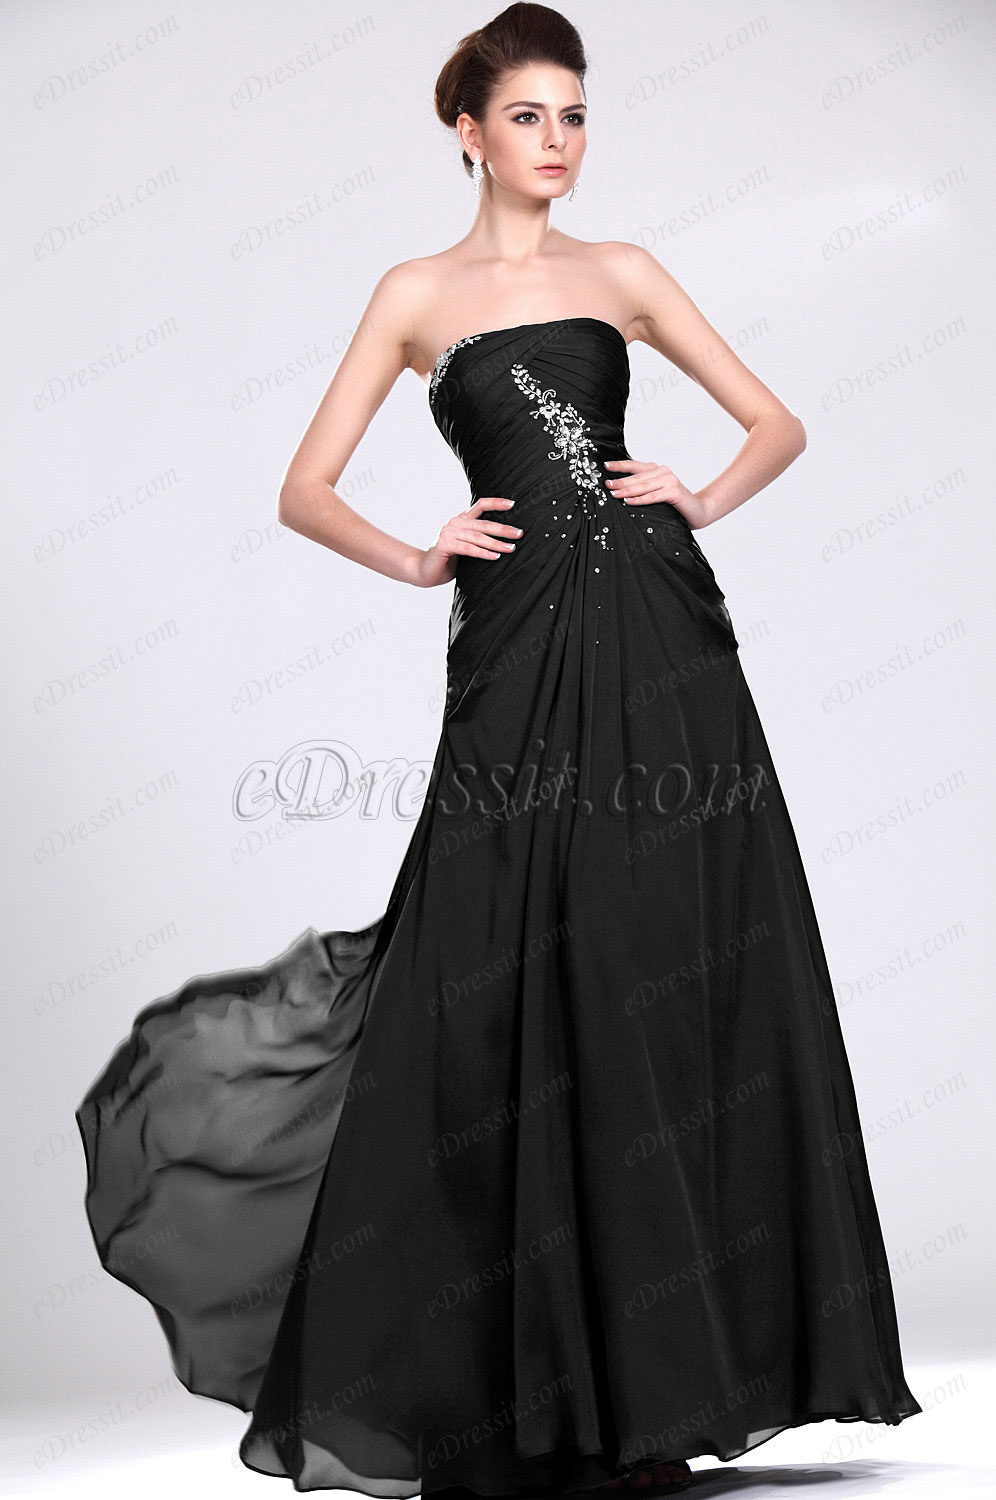 Clearance Sale! eDressit Black Strapless Evening Dress--Size UK16 (00117505b)